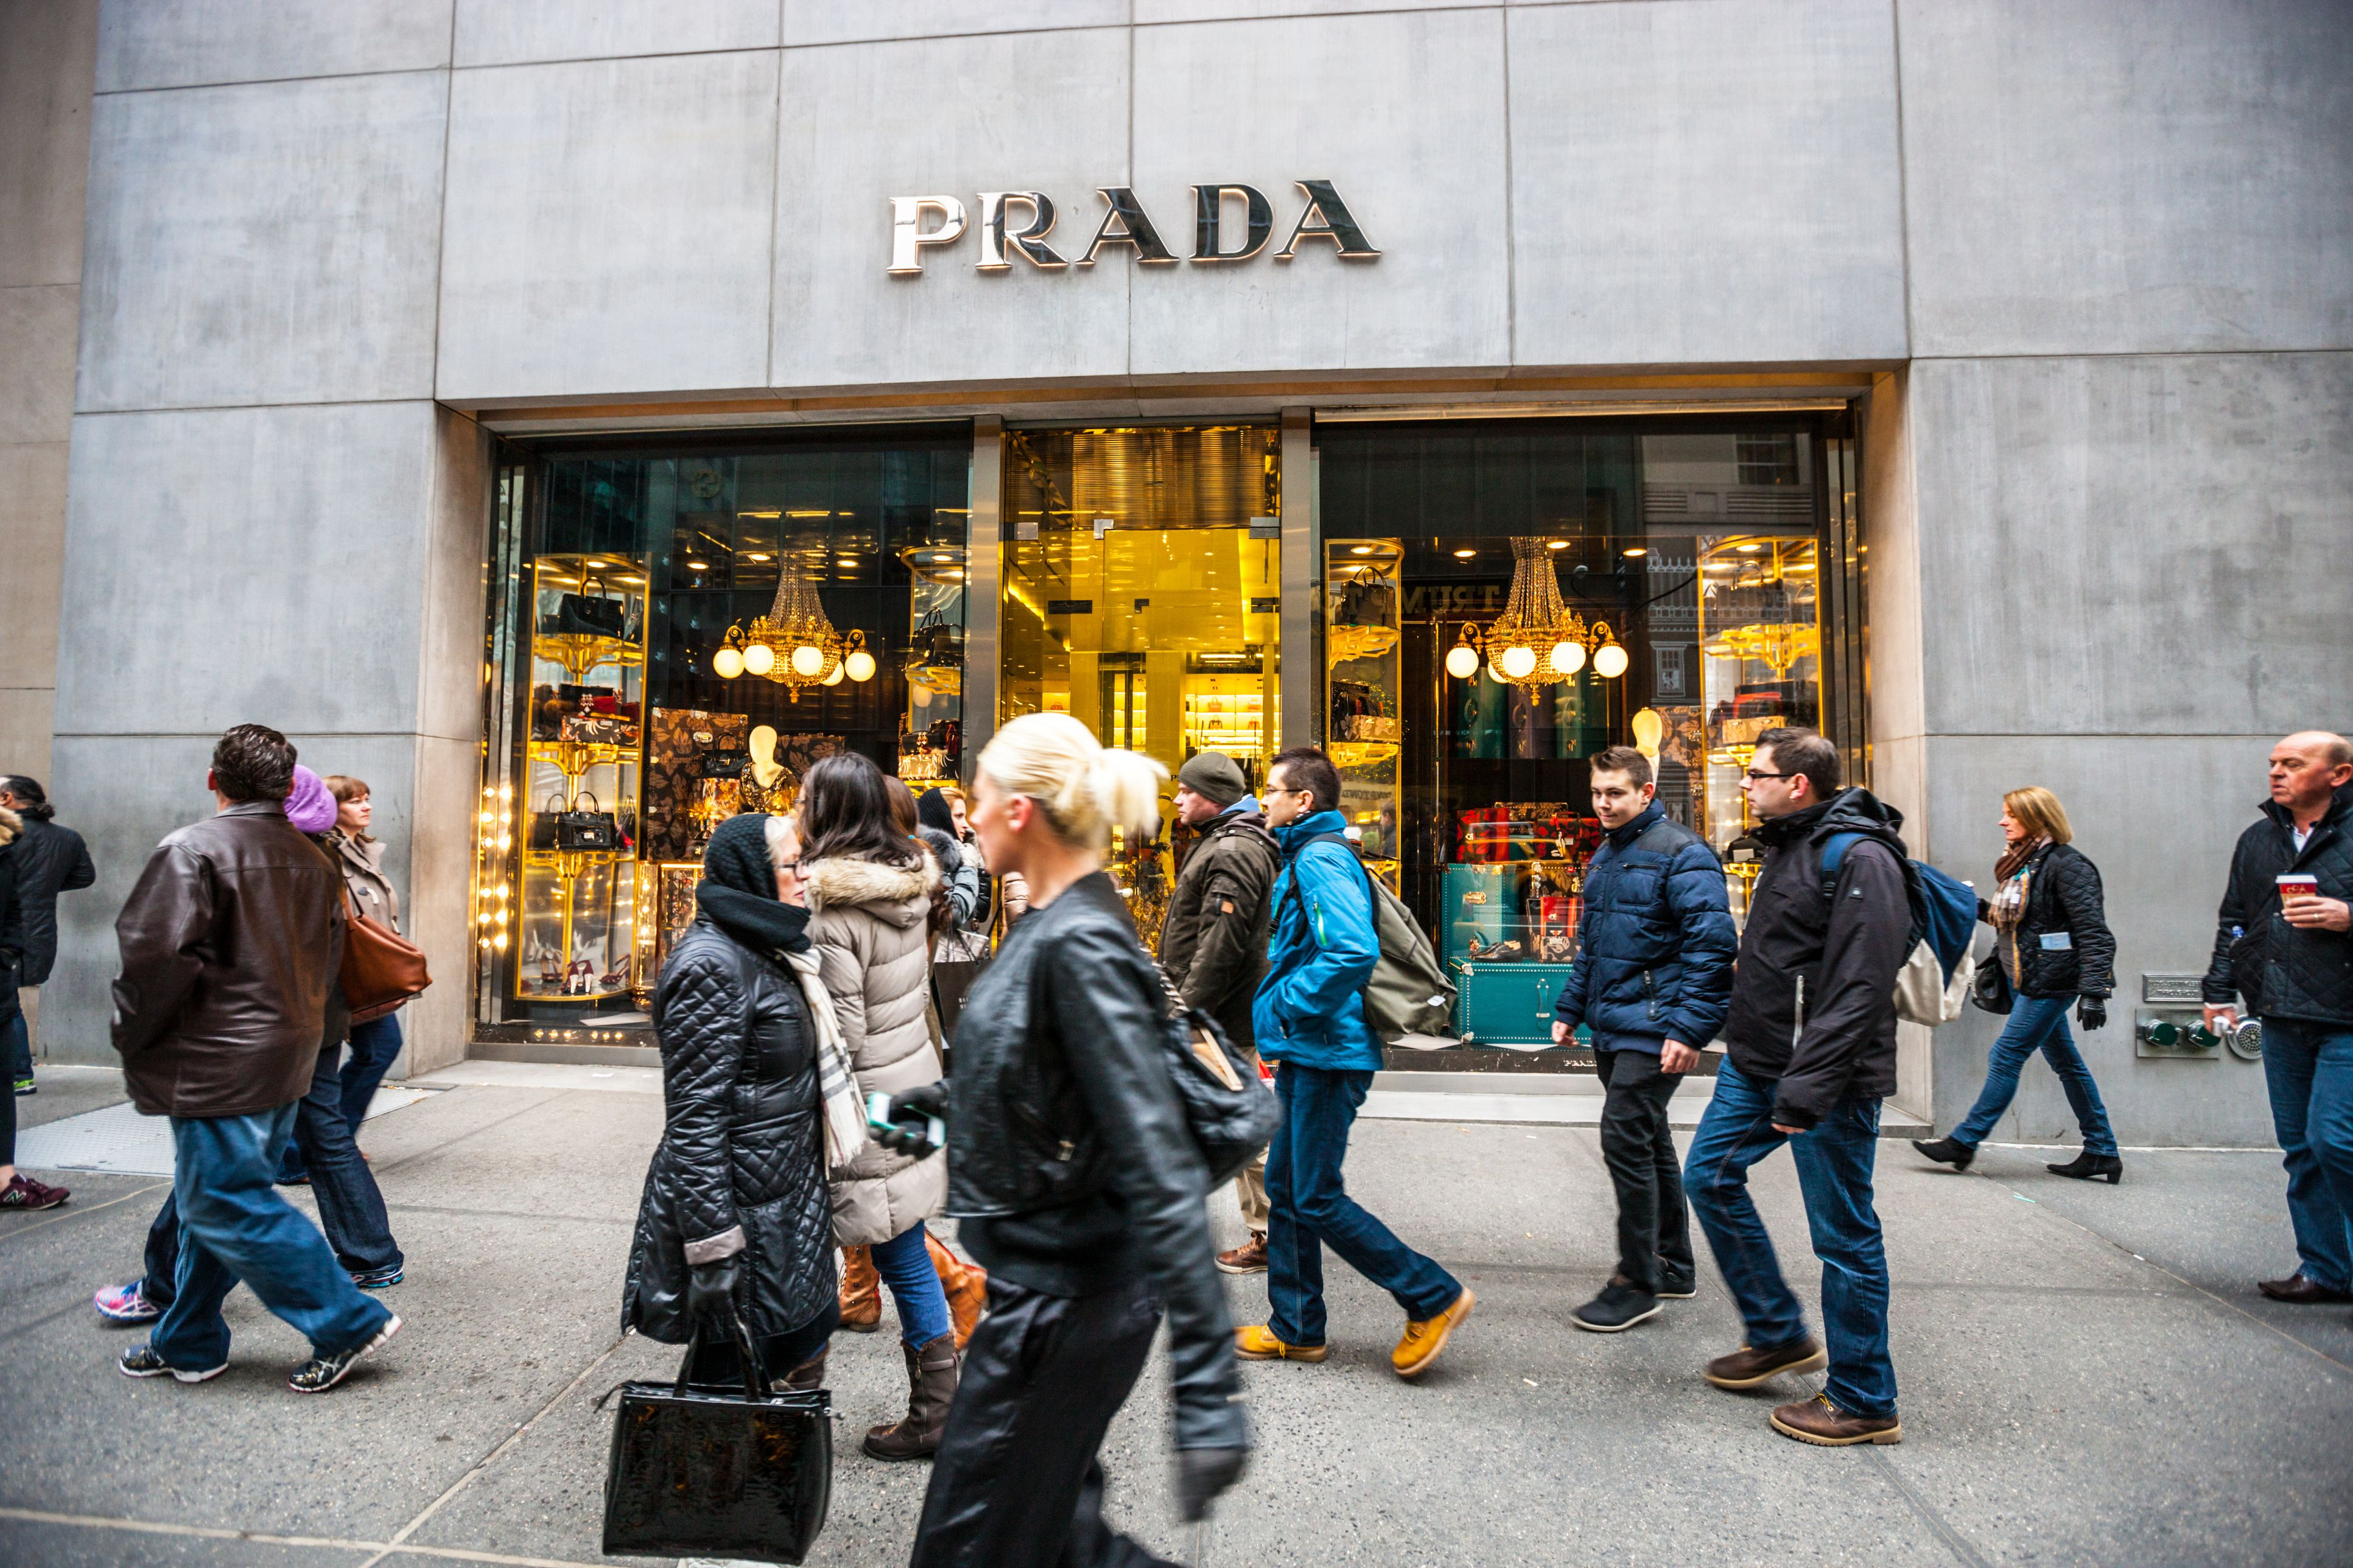 Prada store on 5th Avenue and crowds of people, NYC